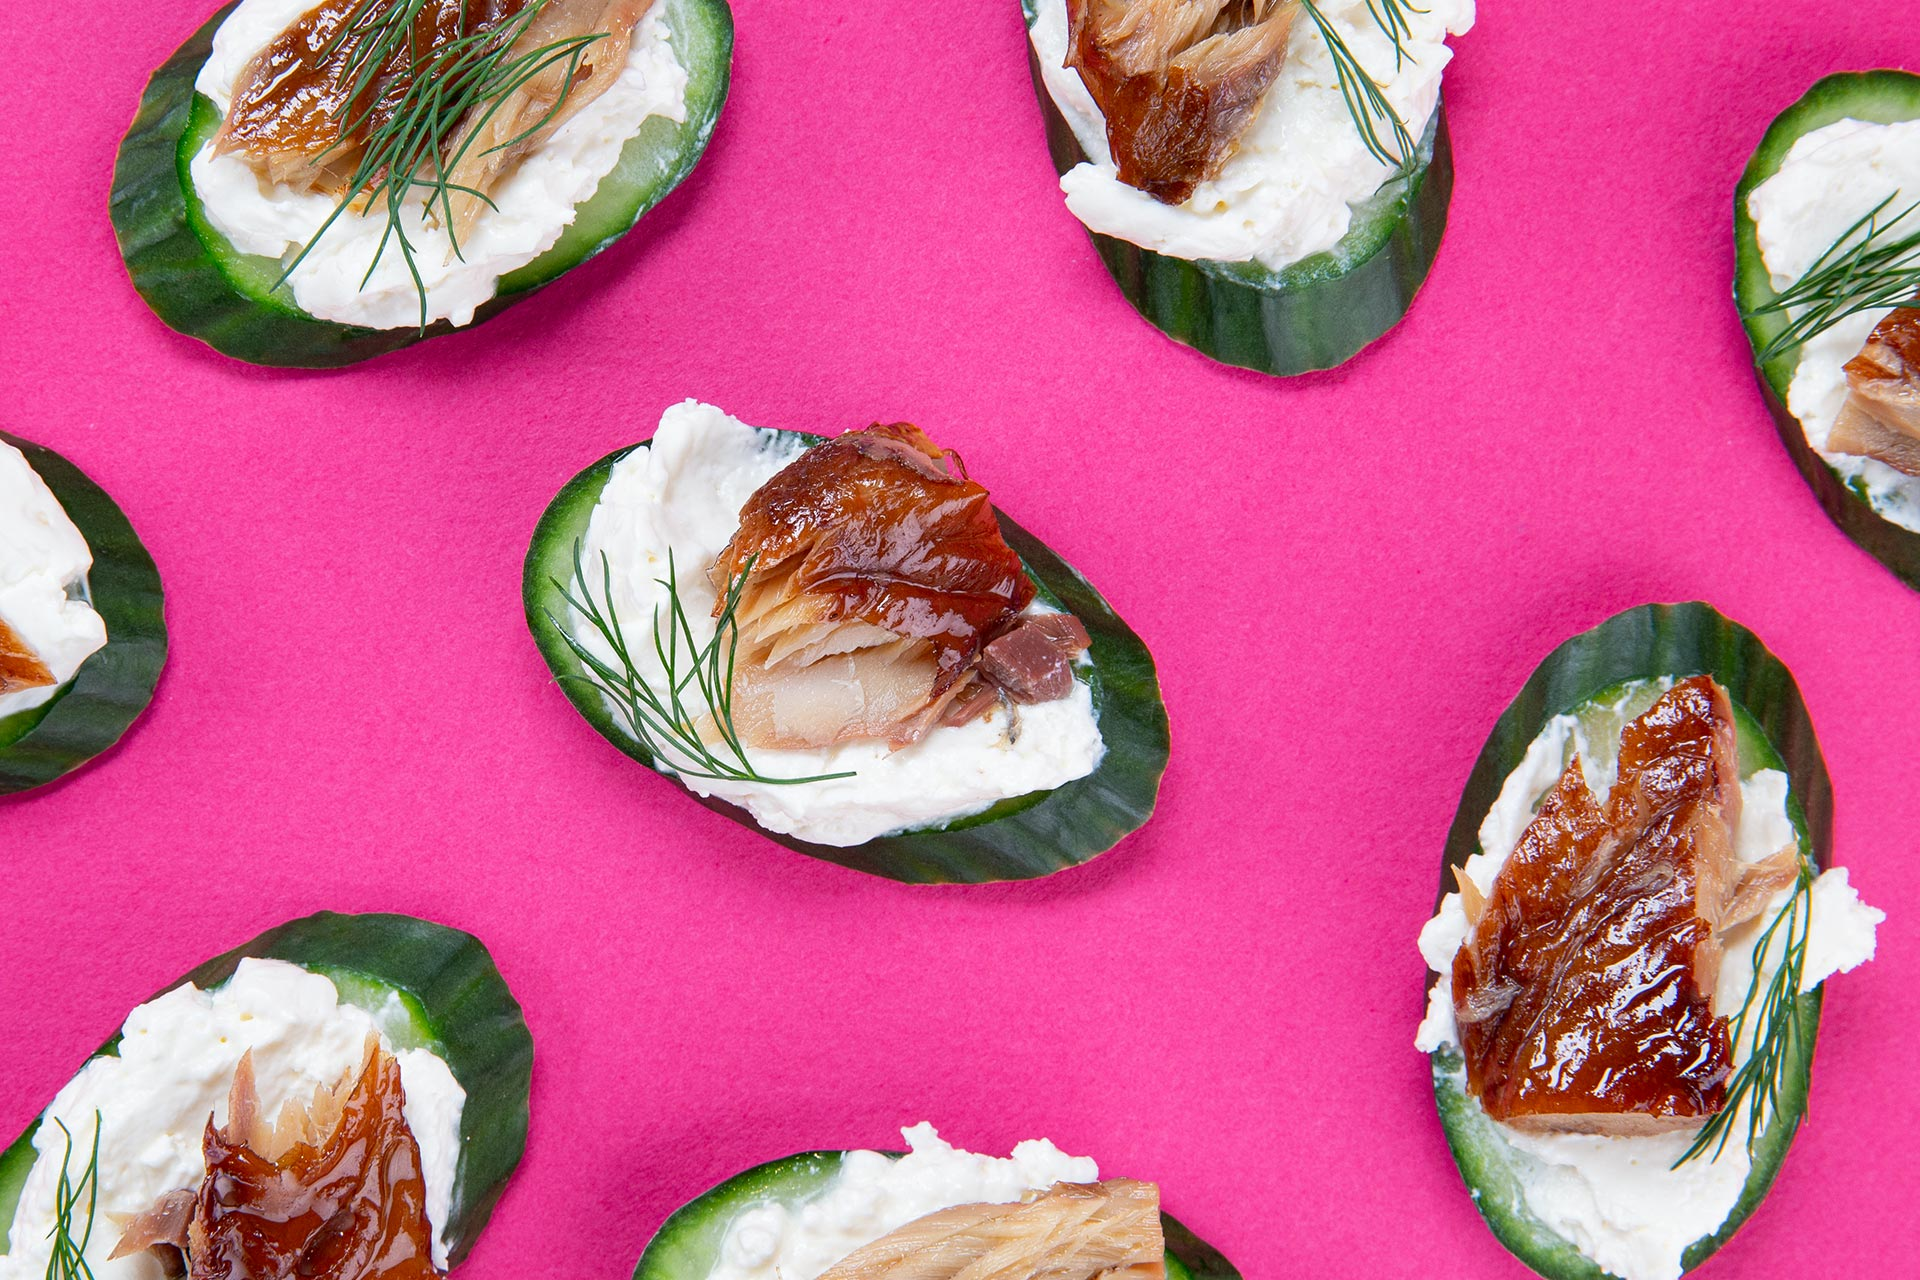 Gin & Tonic Smoked Mackerel On Cucumber Rounds